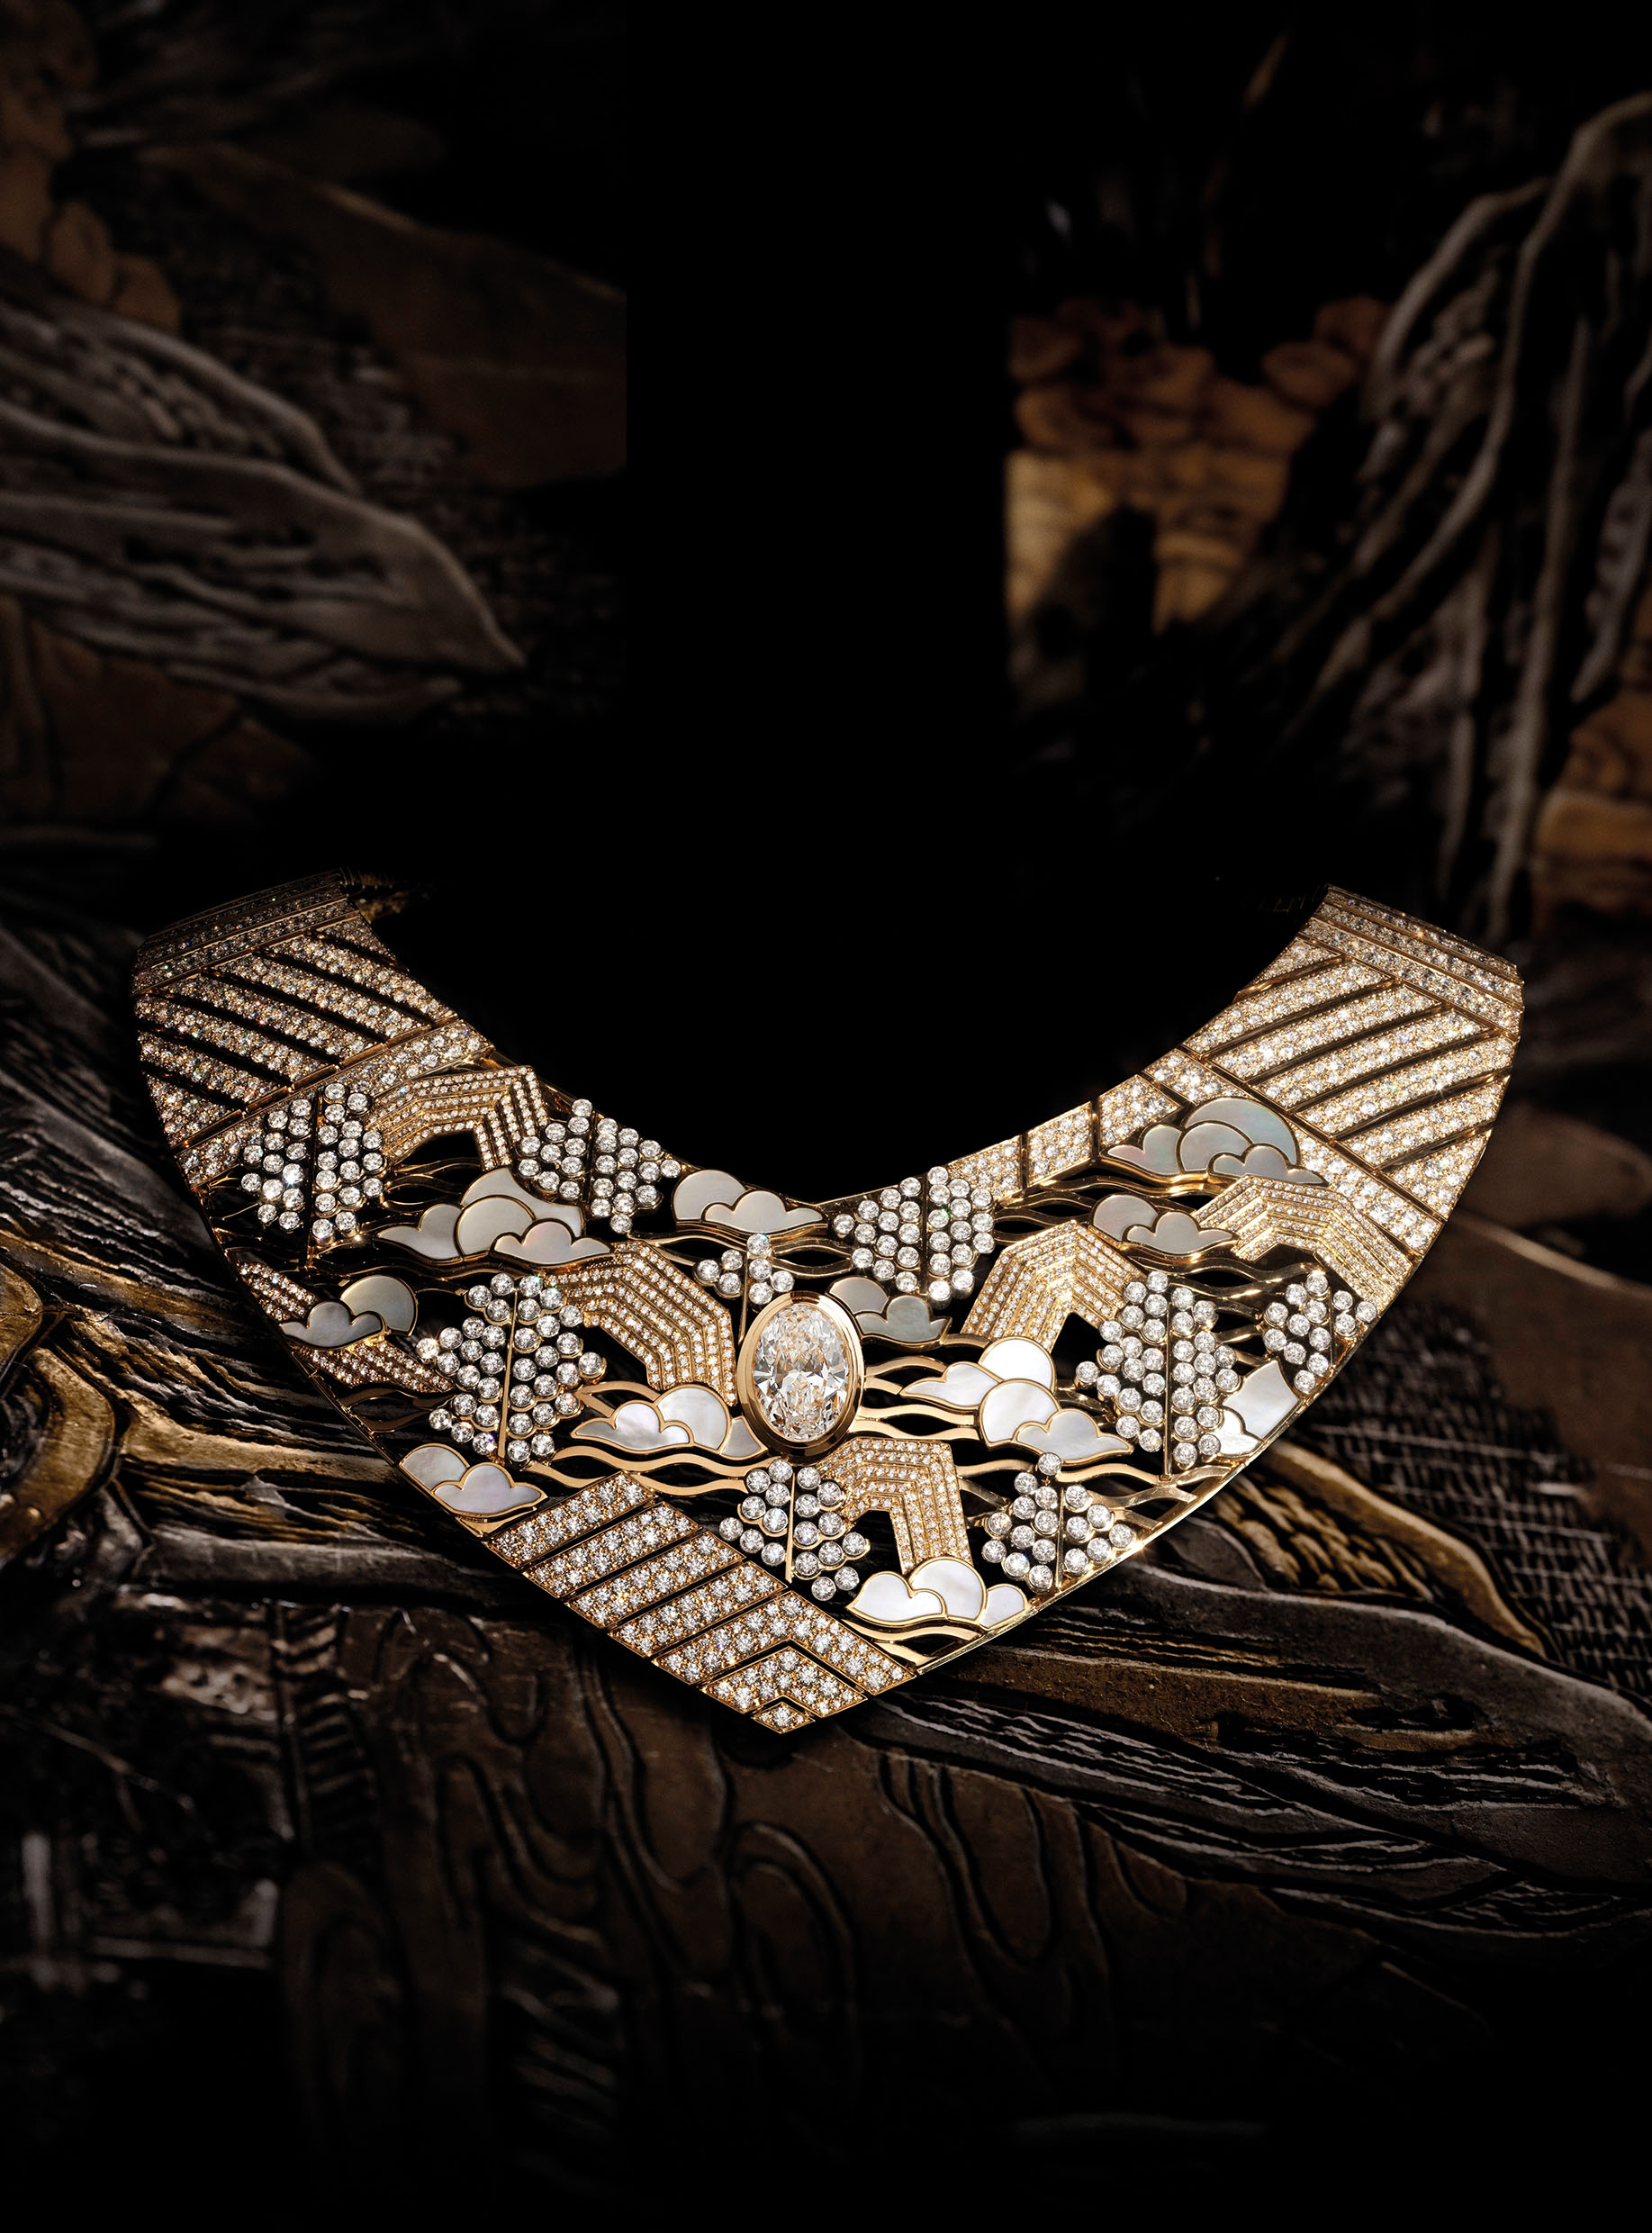 Chanel Coromandel high jewellery